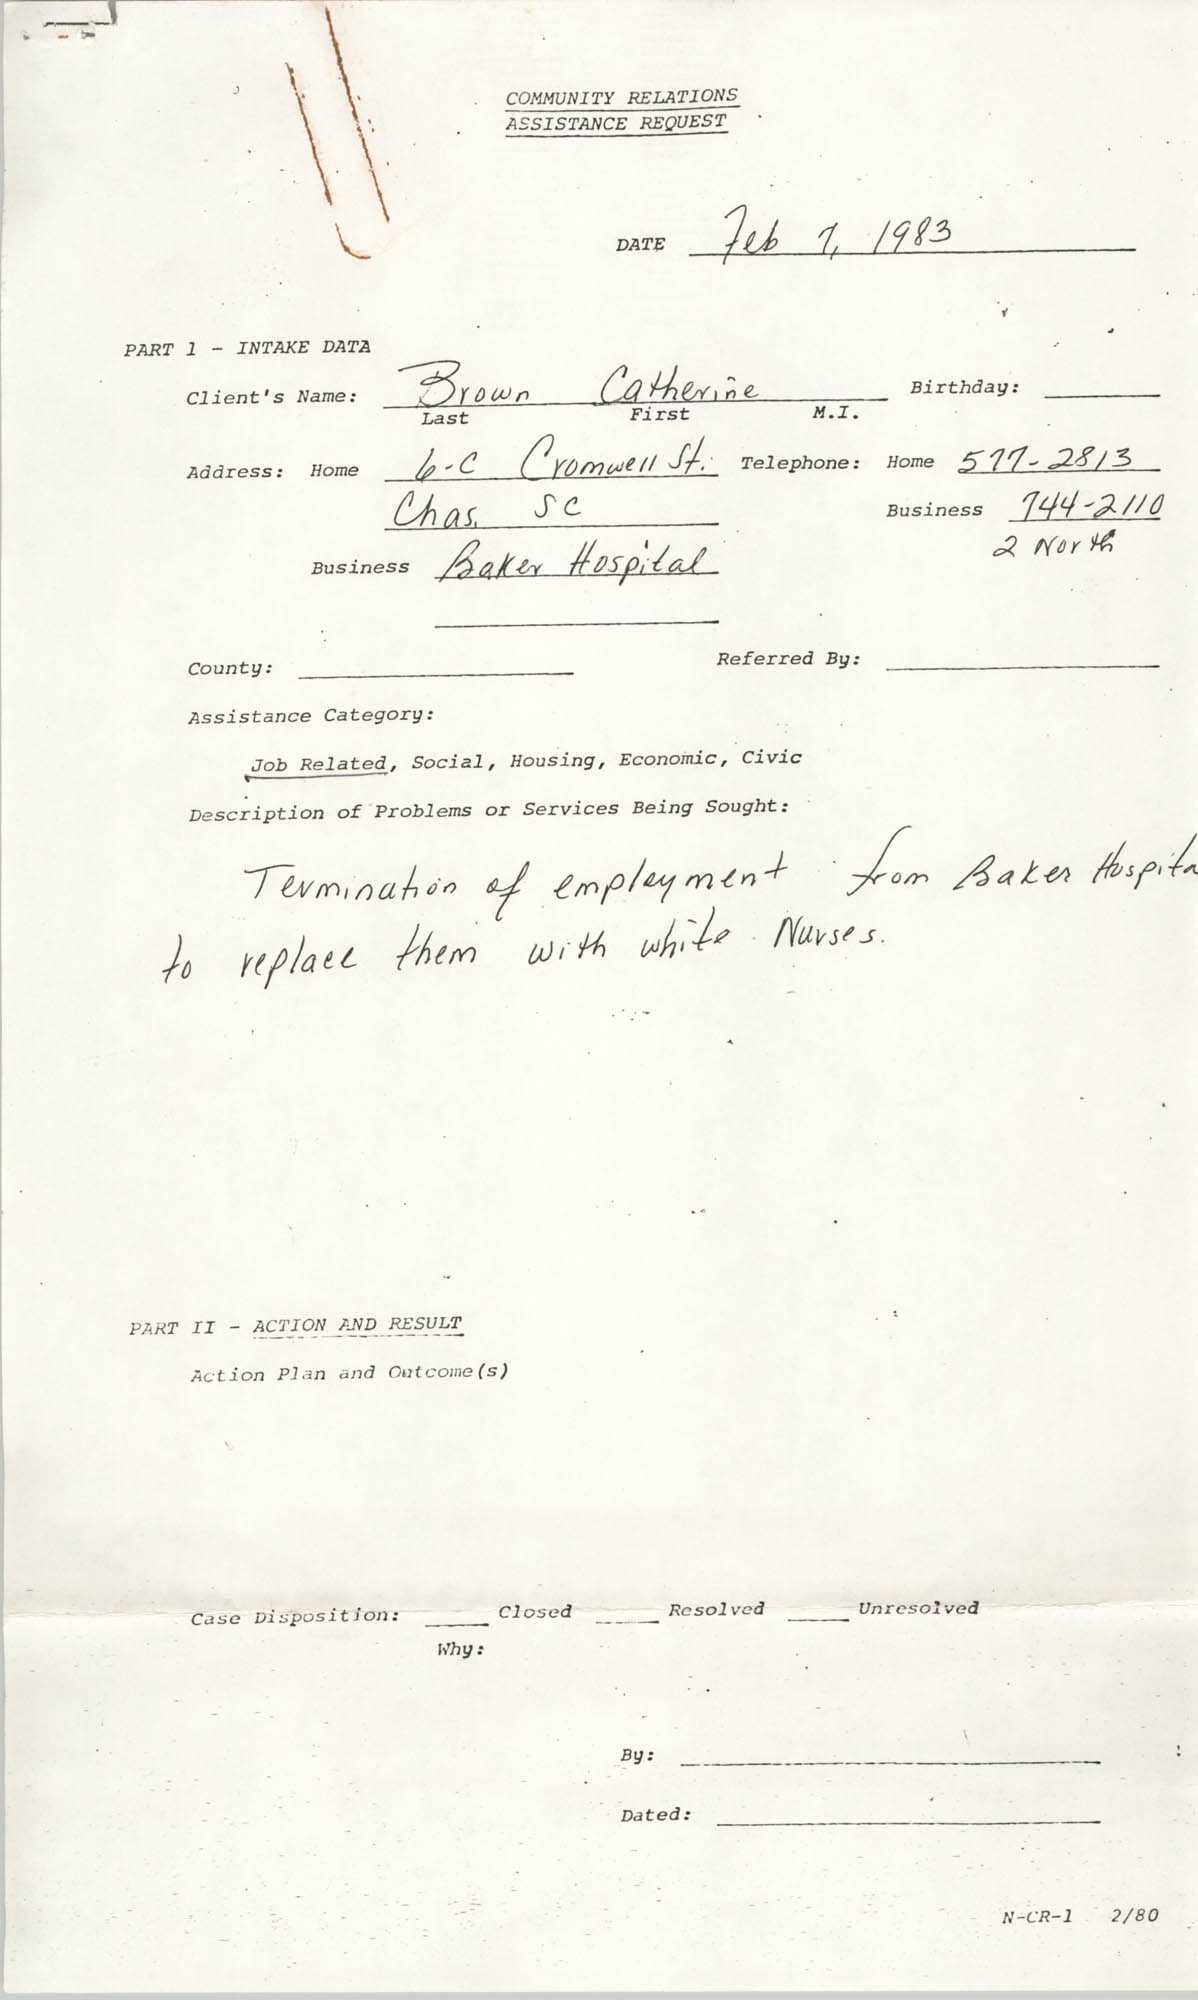 Community Relations Assistance Request, February 7, 1983